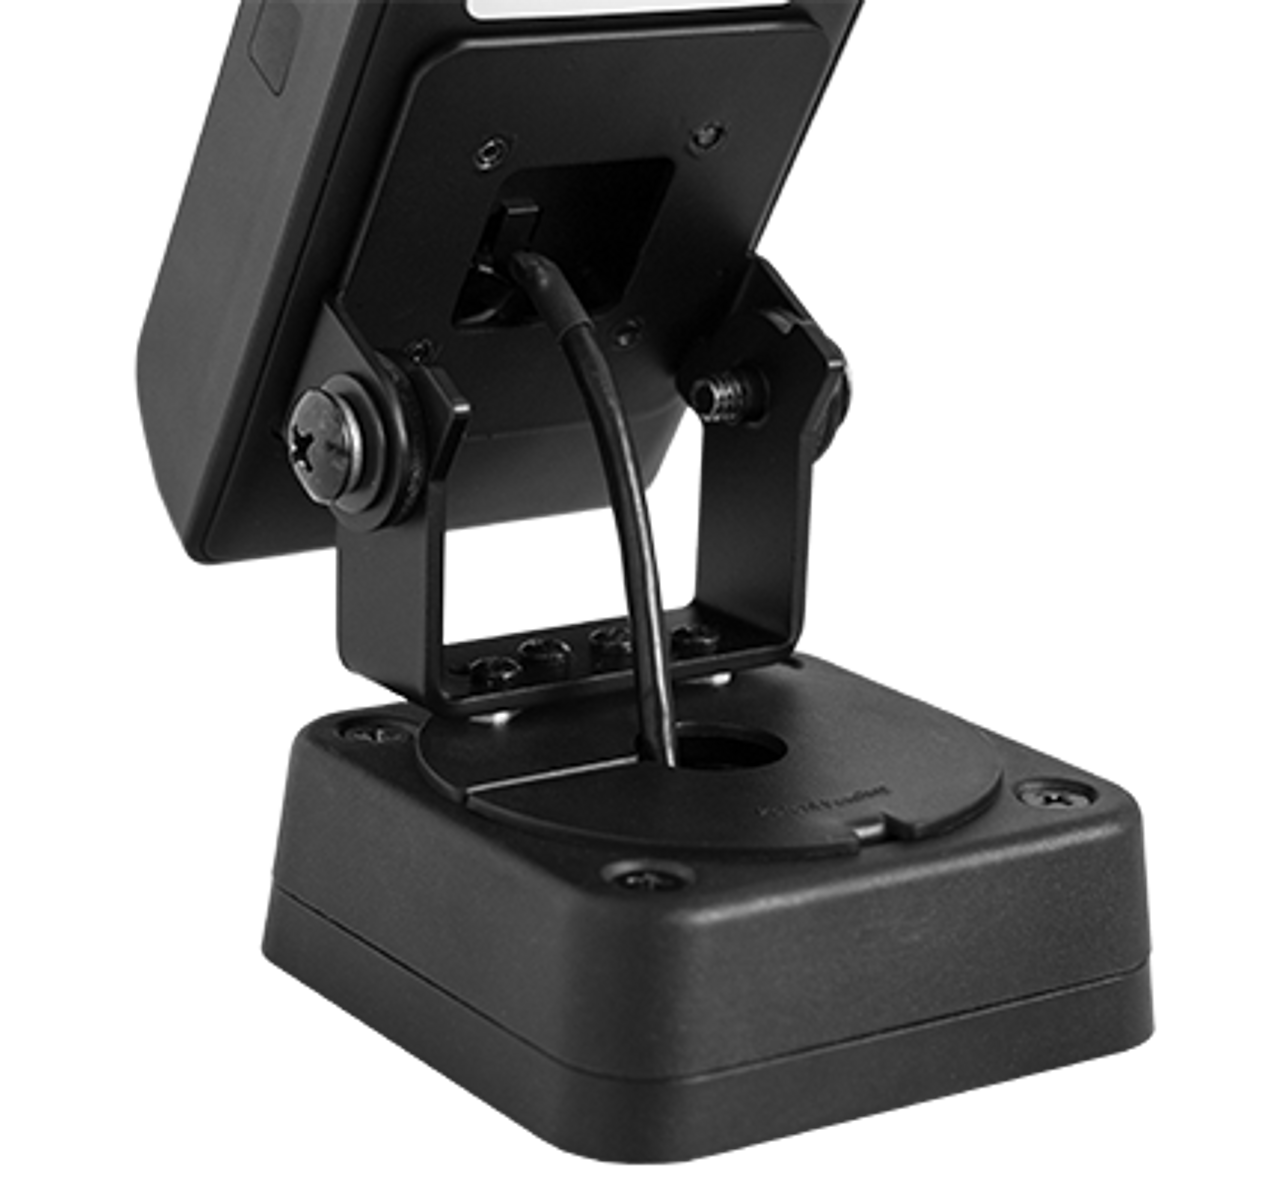 Verge e355 Square Base Non-Charging Stand for Verifone e355